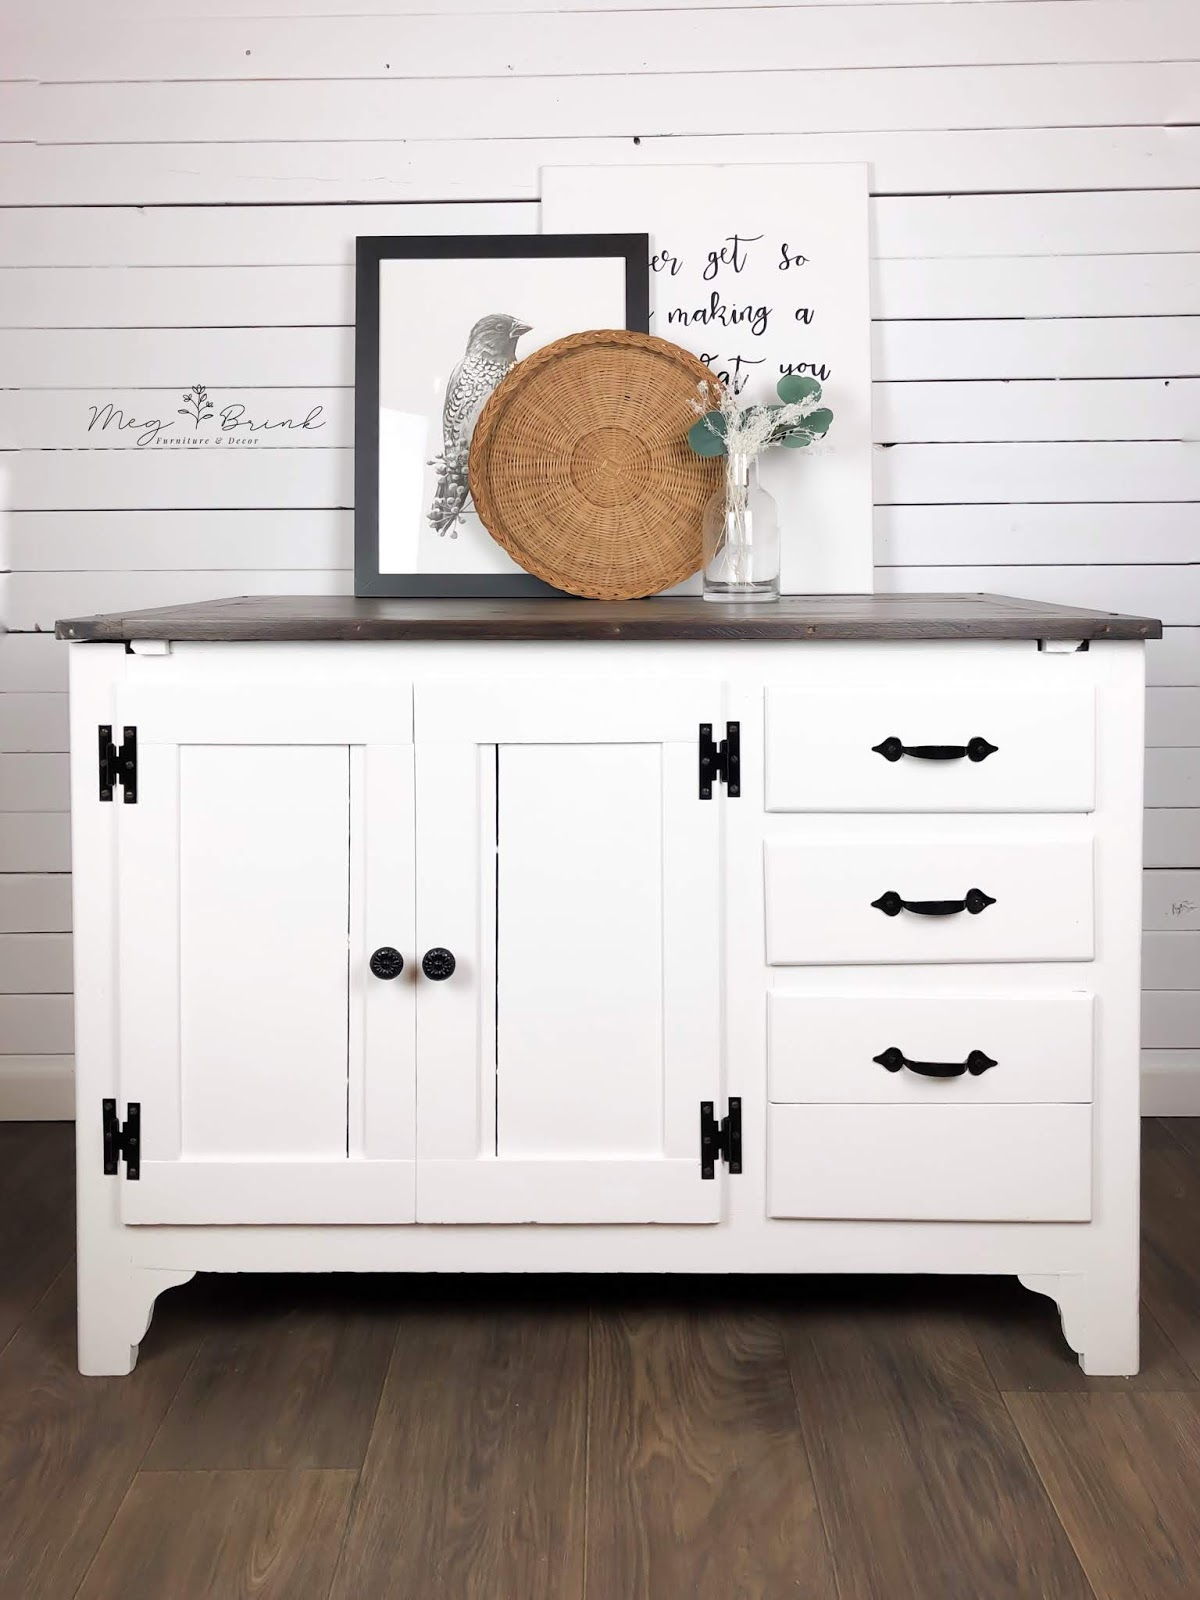 Farmhouse Cabinet in Simplicity with Black Hardware